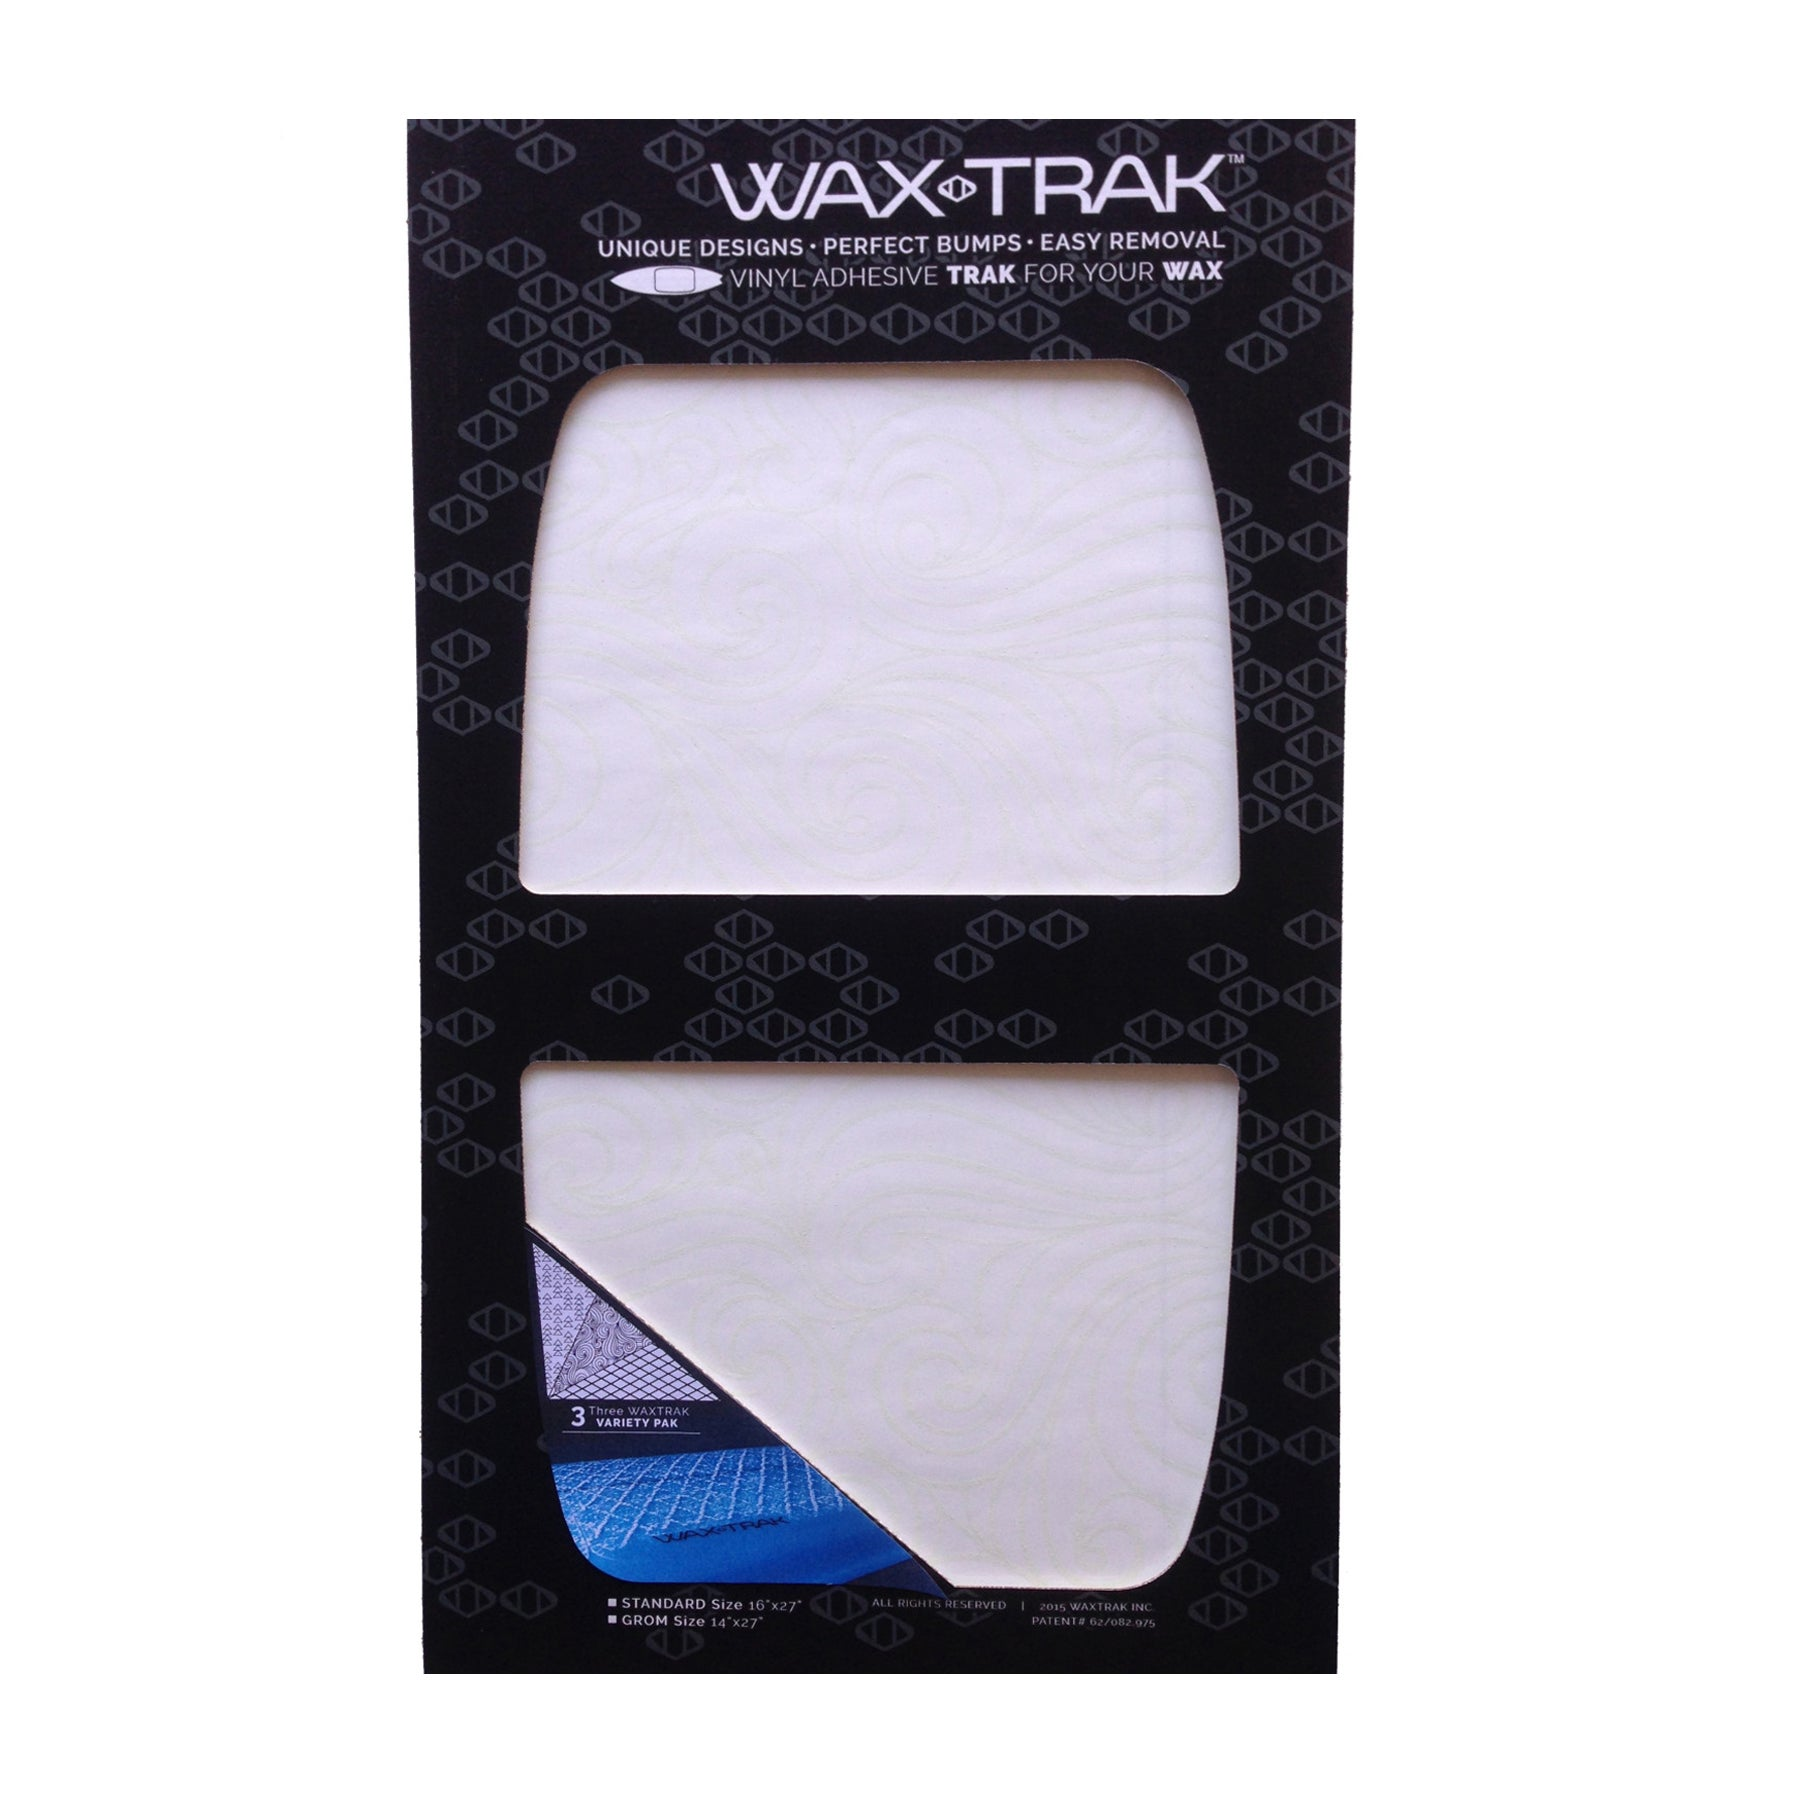 Northcore Waxtrack 3 Pack Surf Tool - Clear